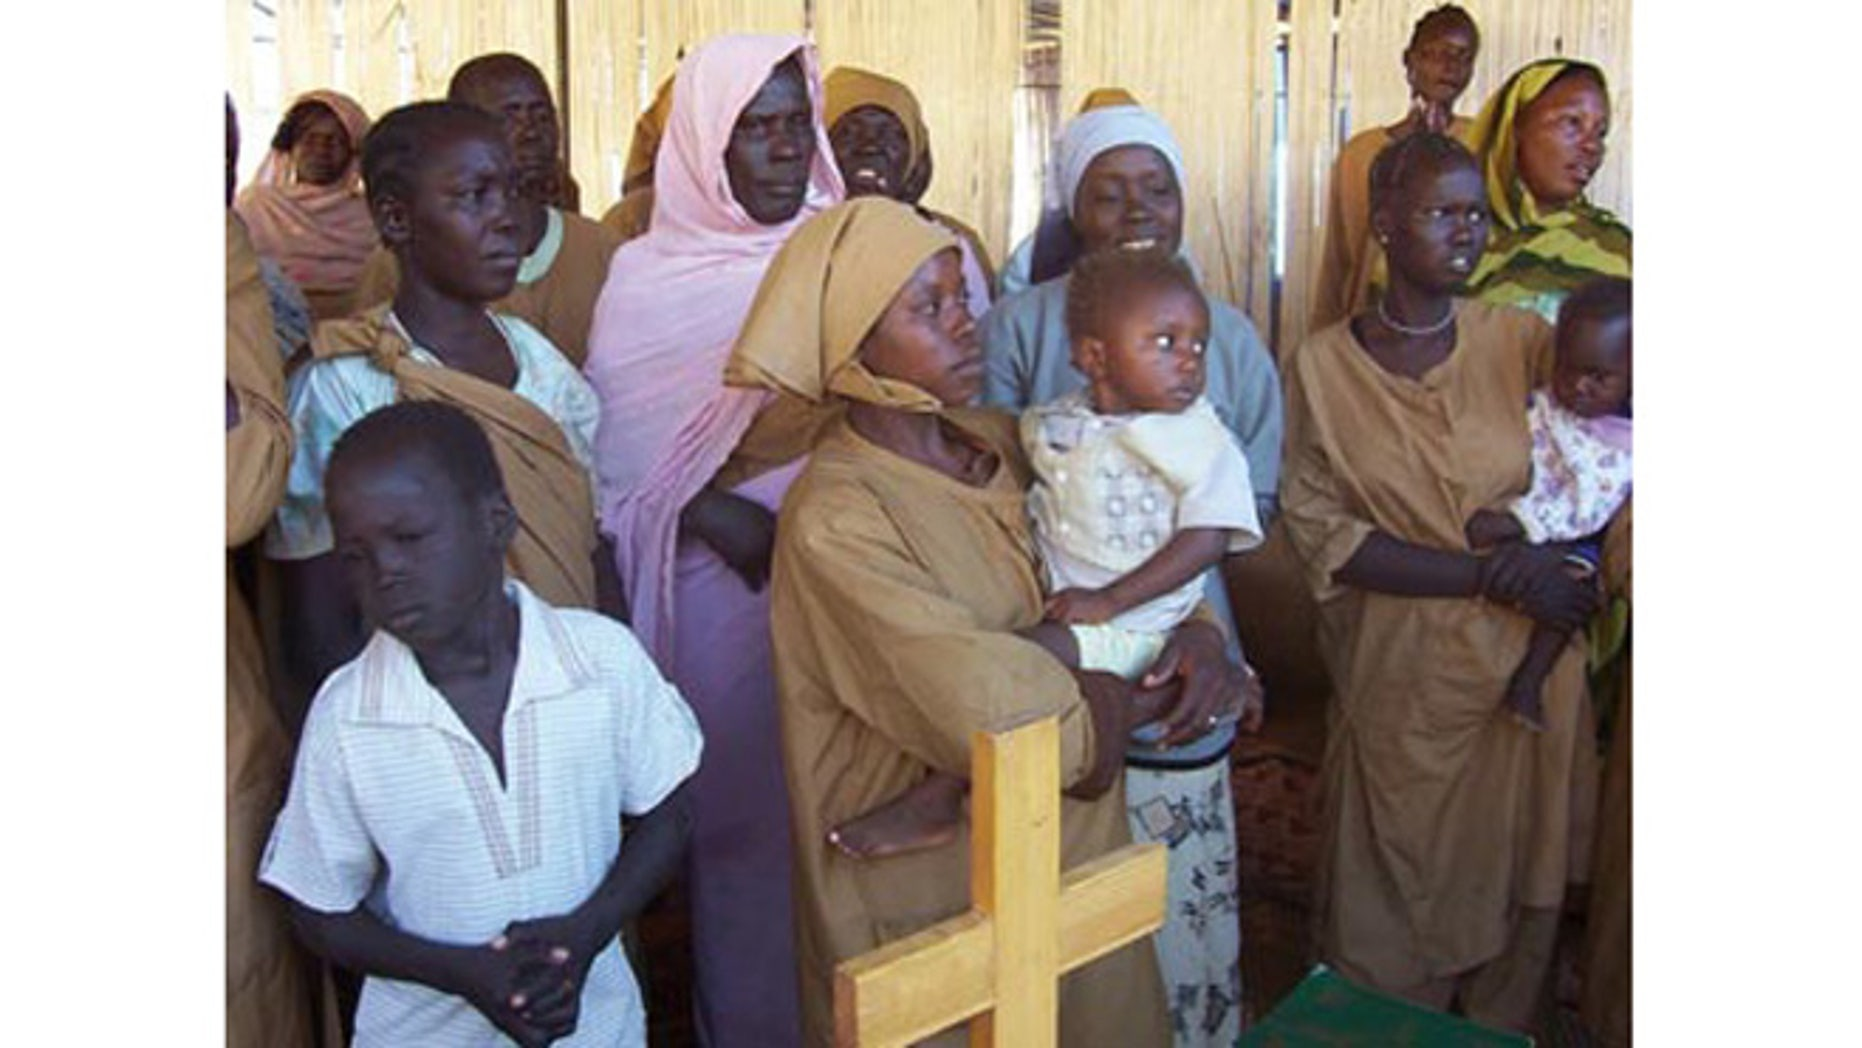 Many Christian woman and children in Northern Sudan are separated from their families and endure increased persecution from an increasing Mulslim population